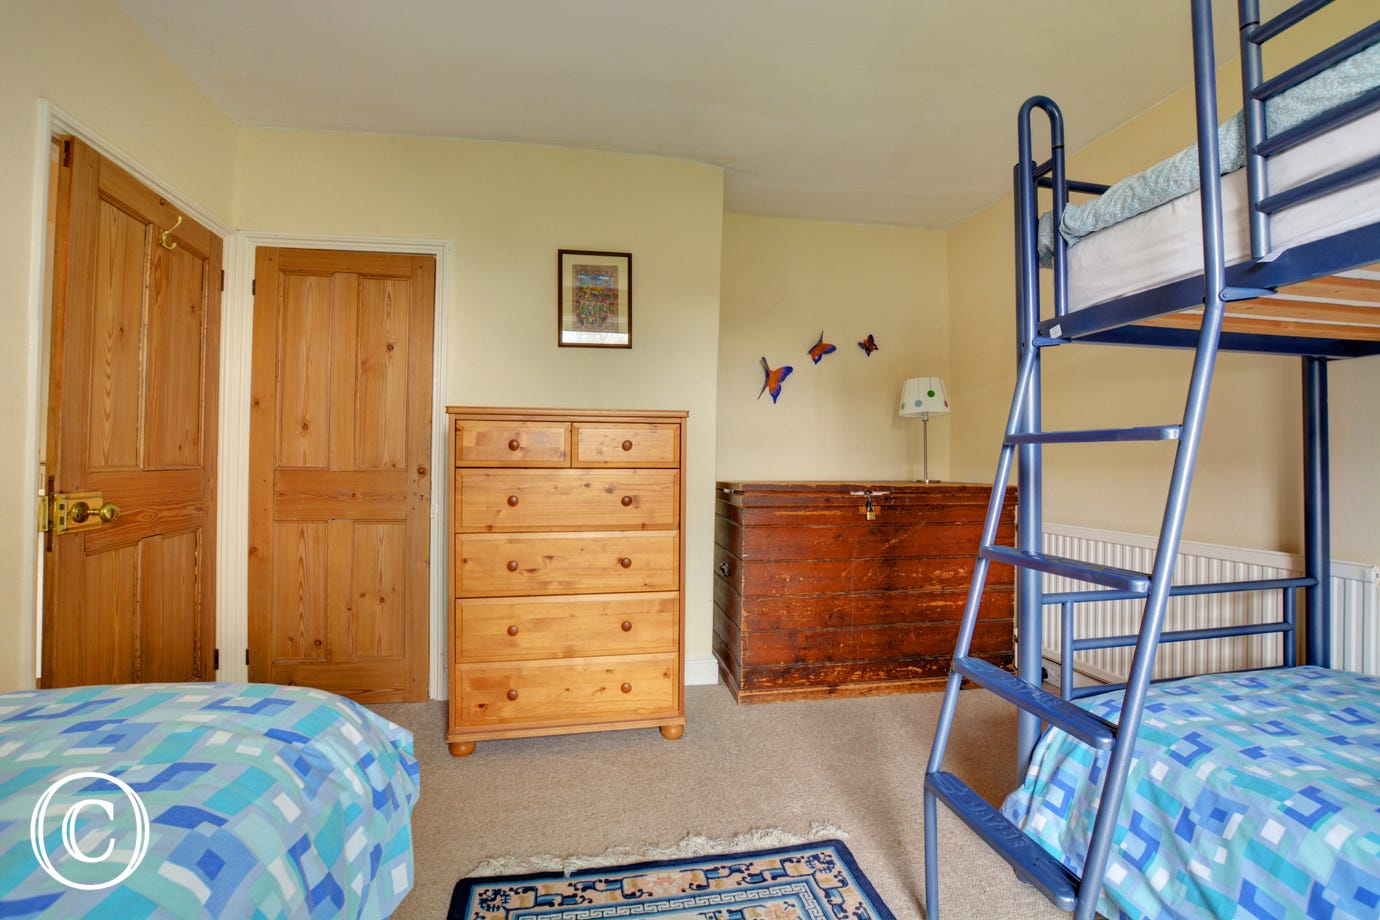 Bunk beds and two single beds in bedroom 4, perfect for children.